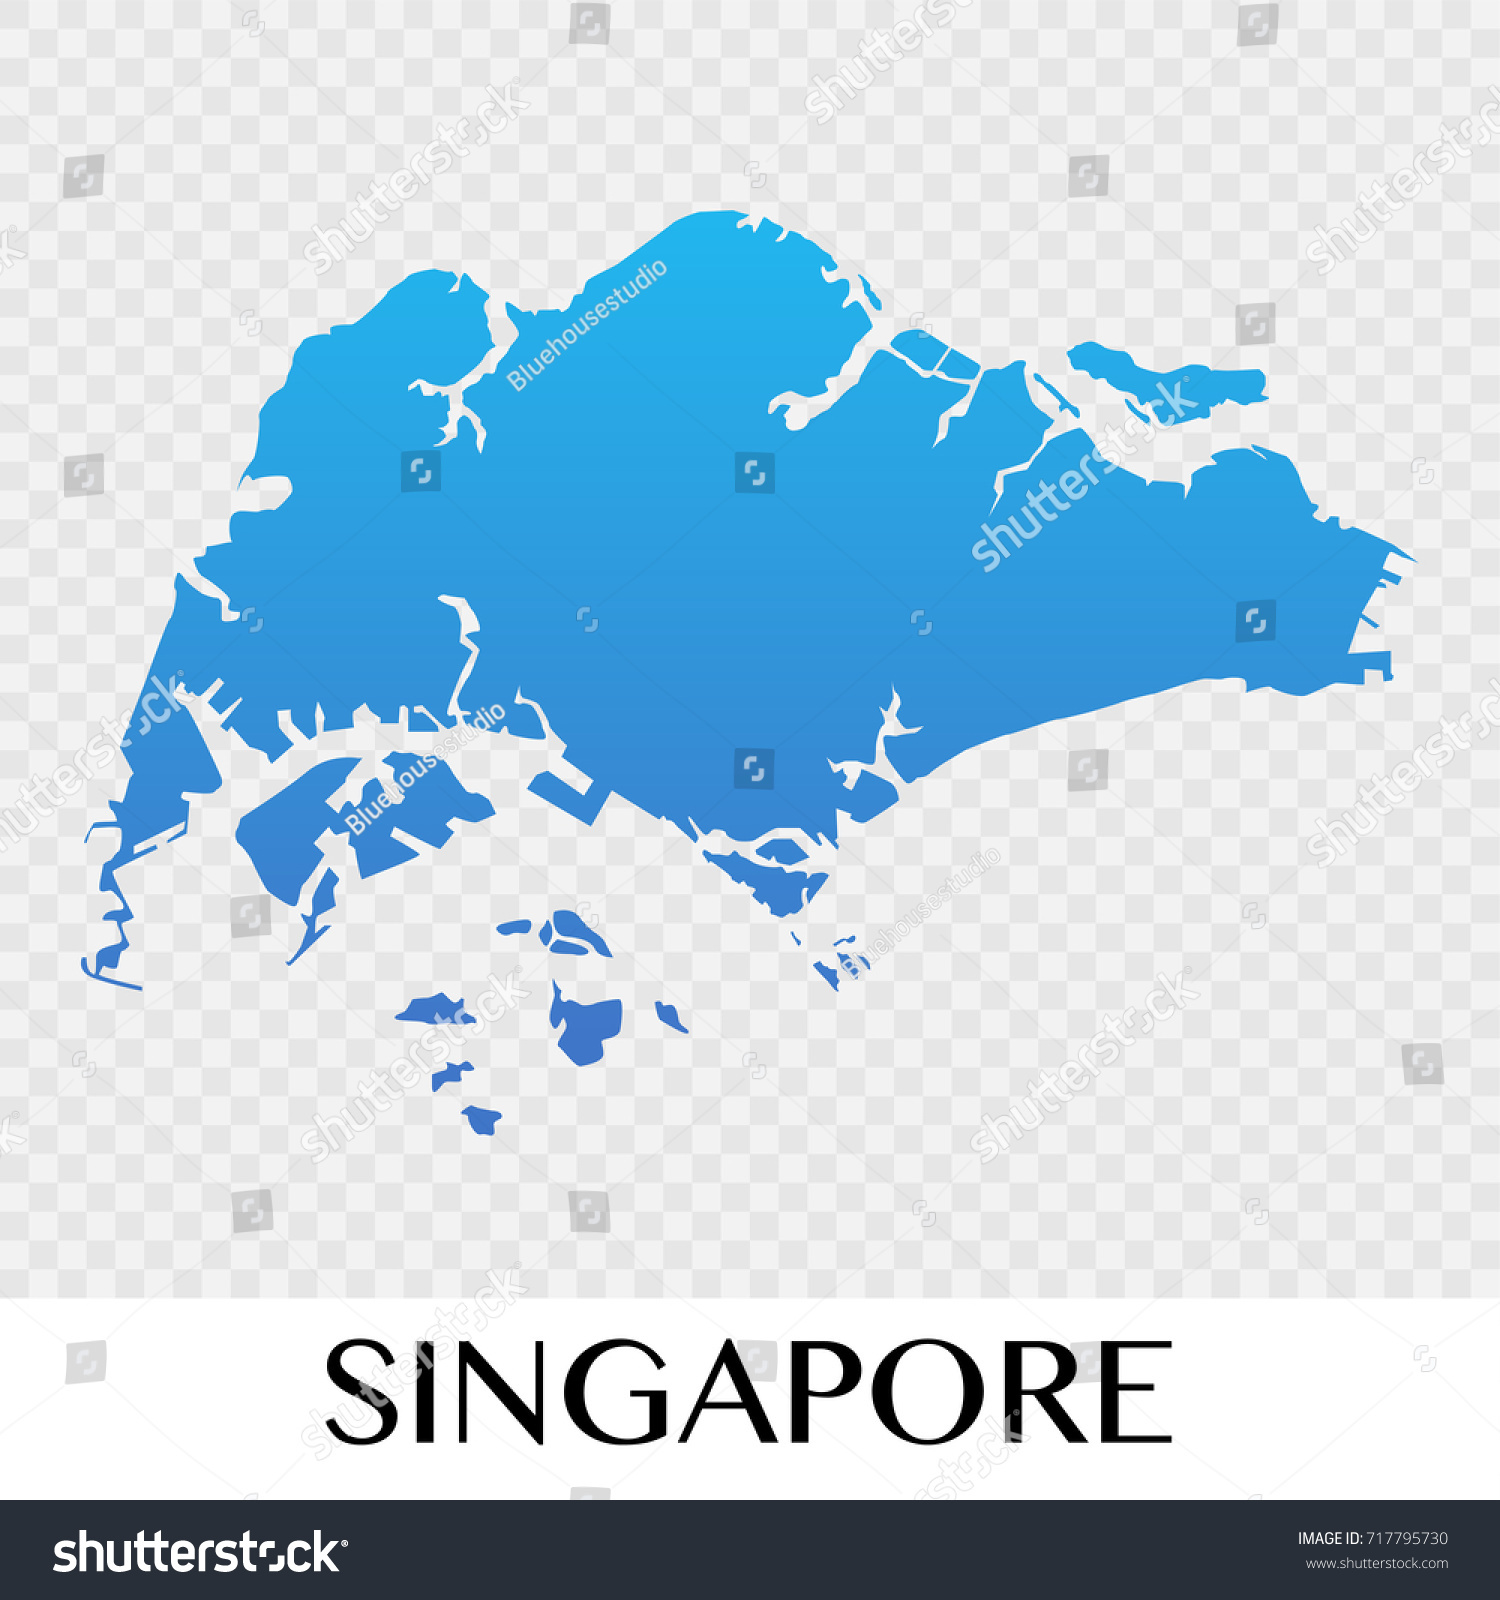 Singapore On The Map Of Asia.Singapore Map Asia Continent Illustration Design Stock Vector